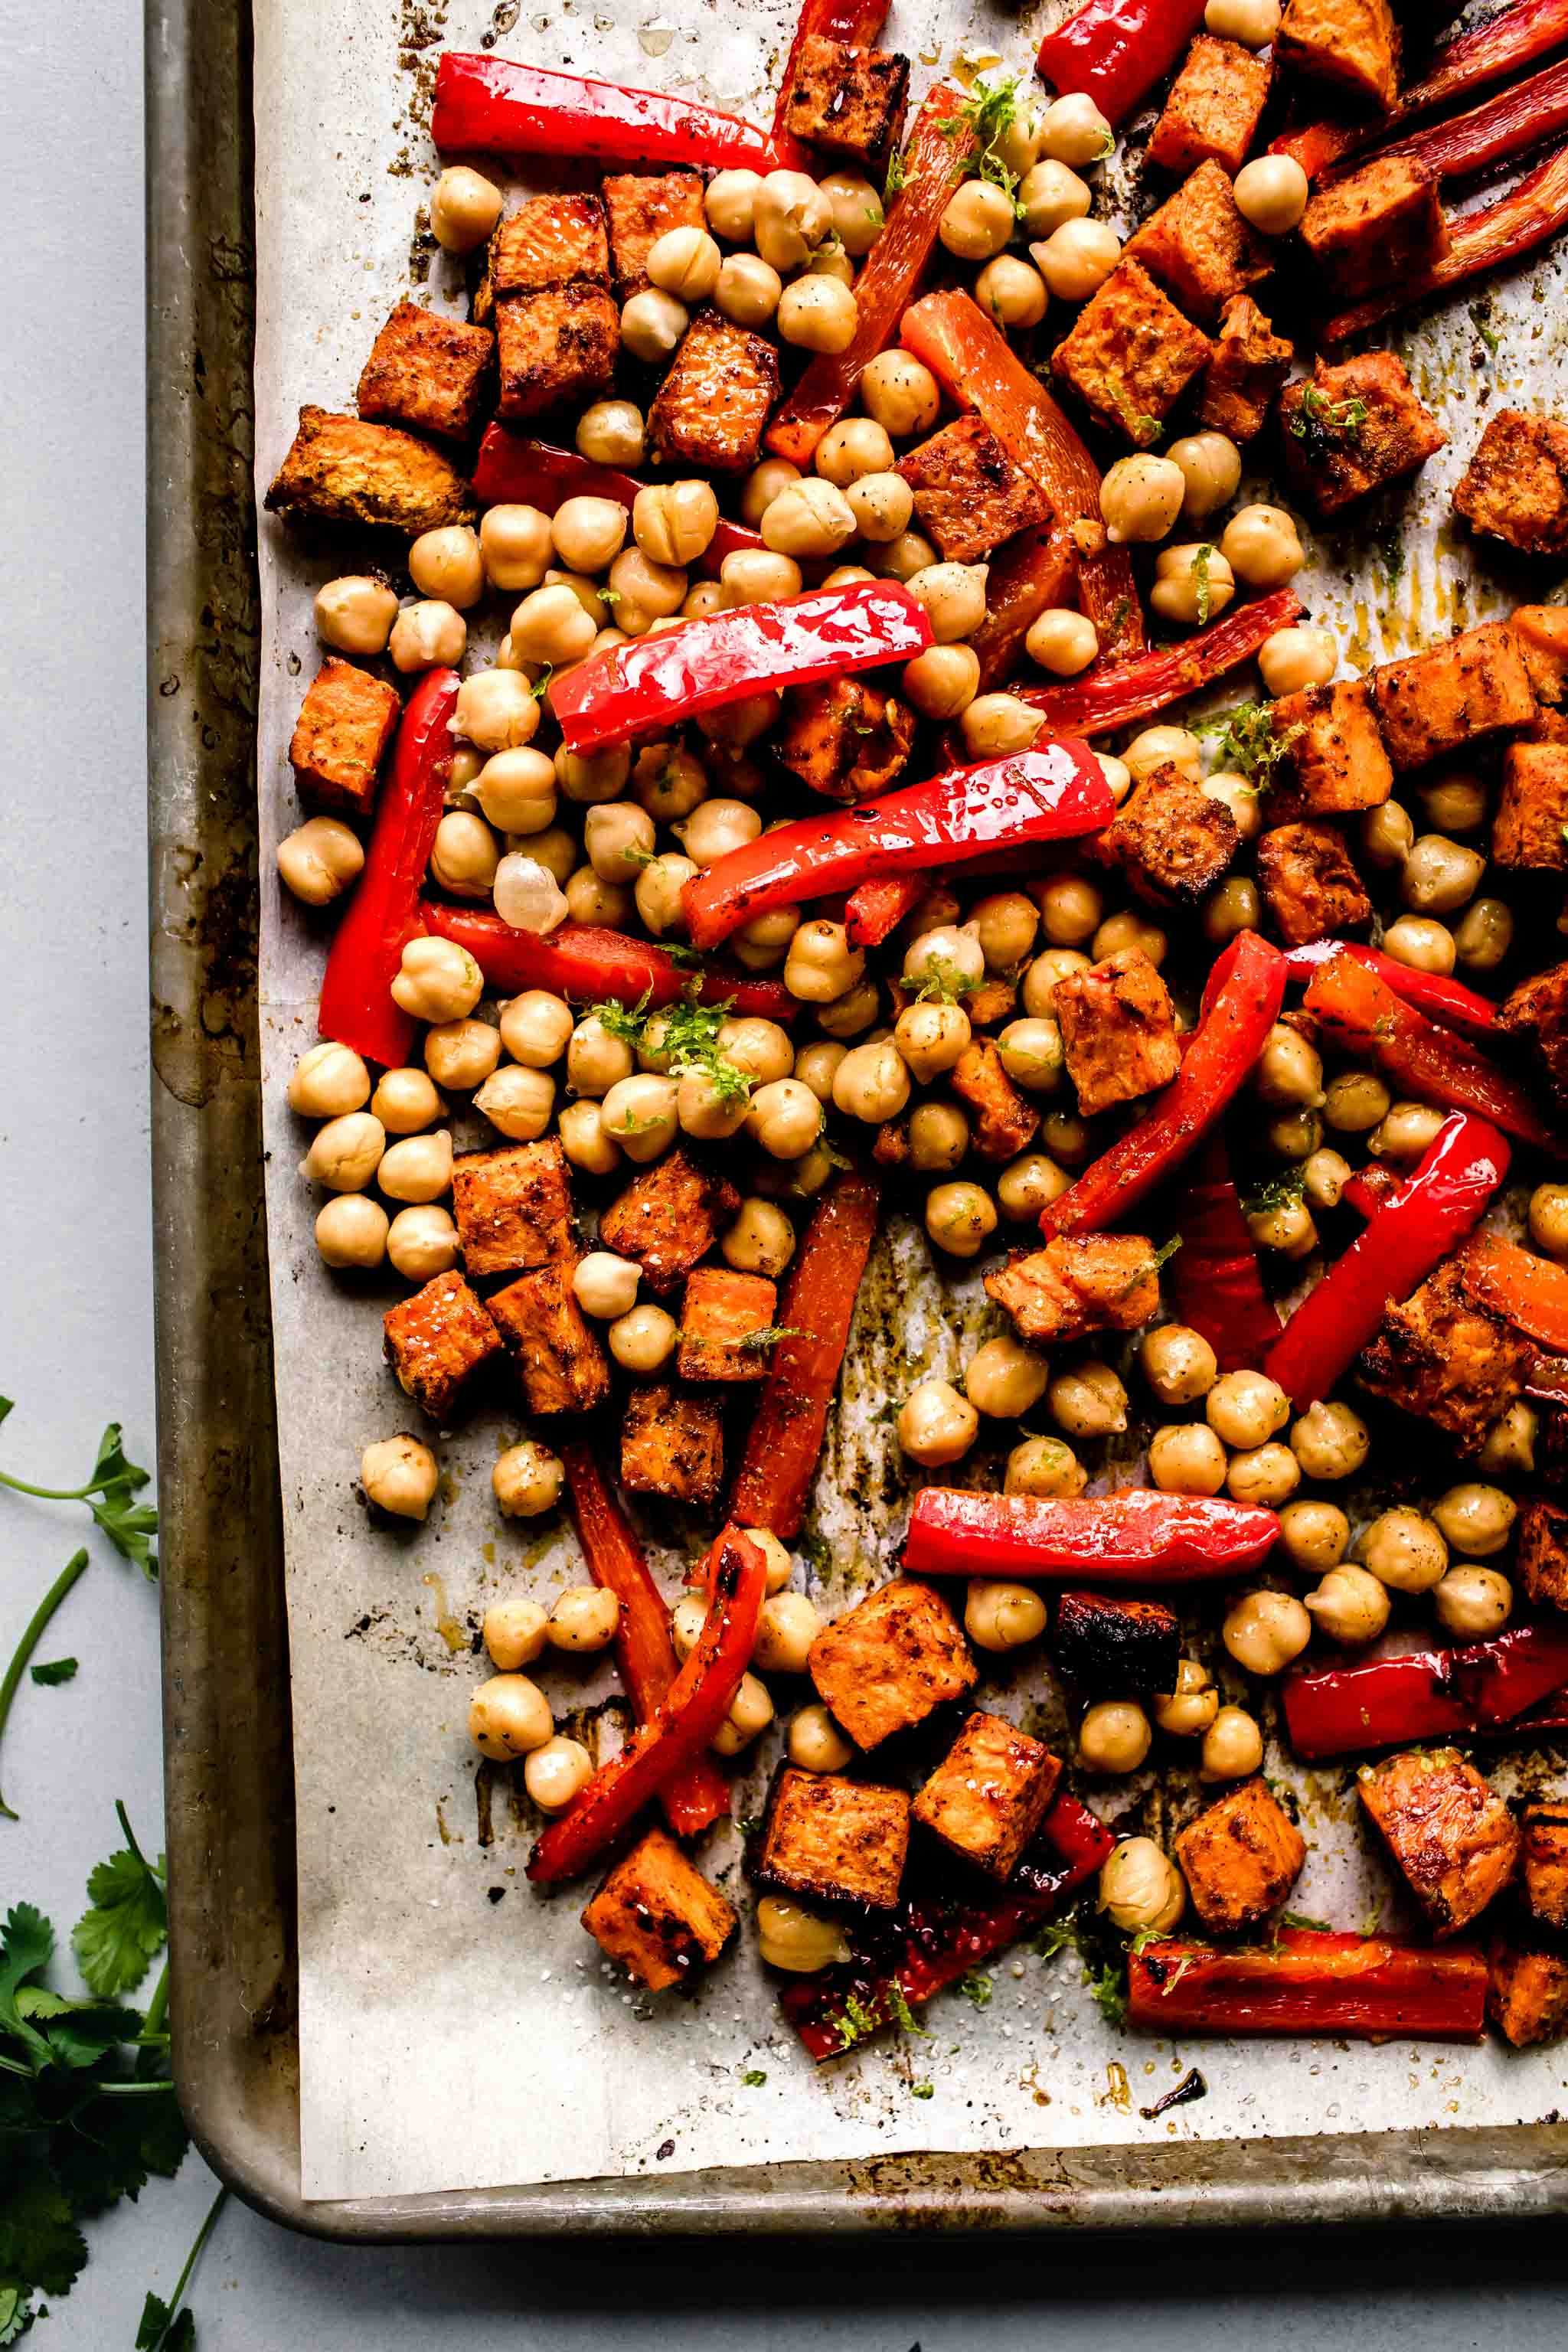 Peppers, sweet potatoes and chickpeas on baking sheet after roasting.